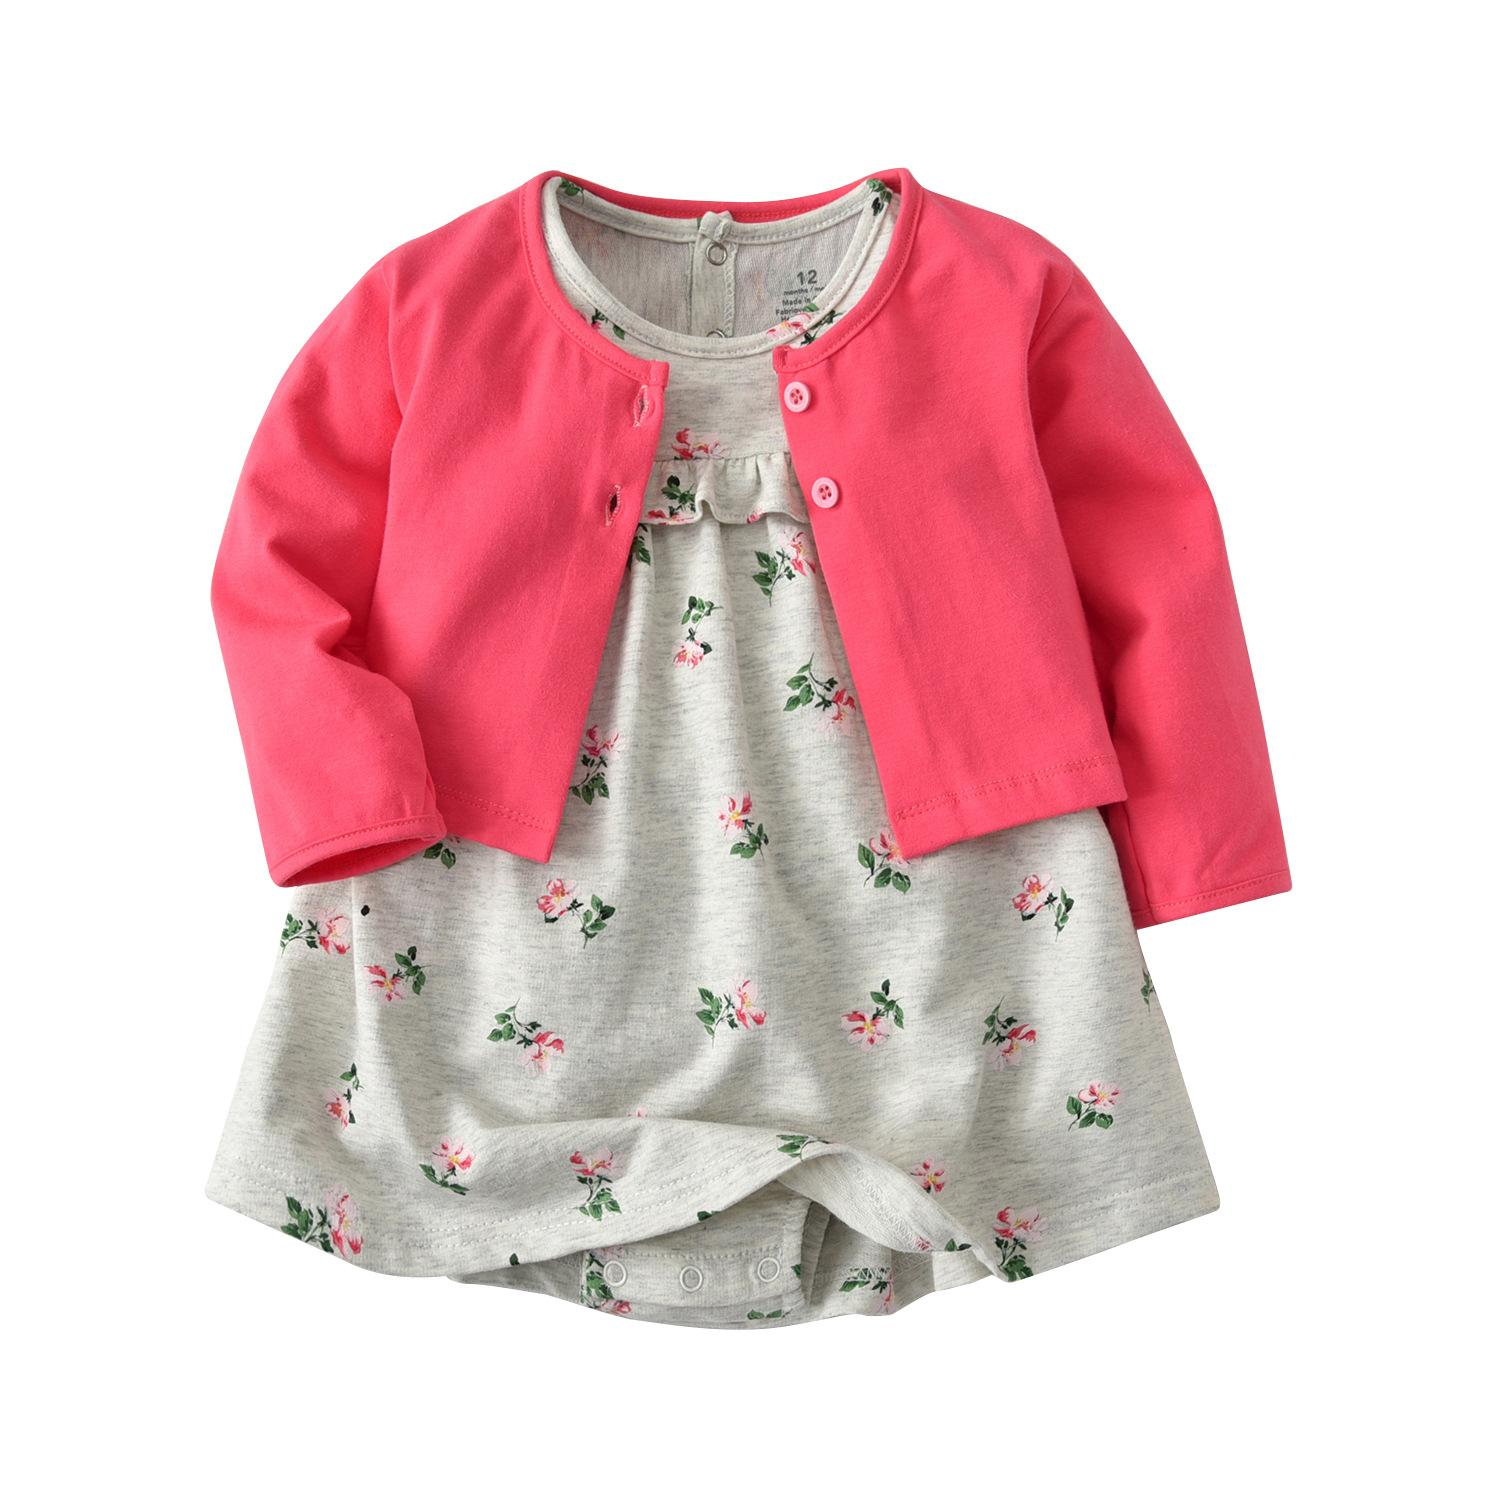 0335776a97c 2019 Baby Girl Clothing Set Red Knit Cardigan+ Grey Flower Rompers Dress  Toddler Girl Clothes Boutique From Sinobaby